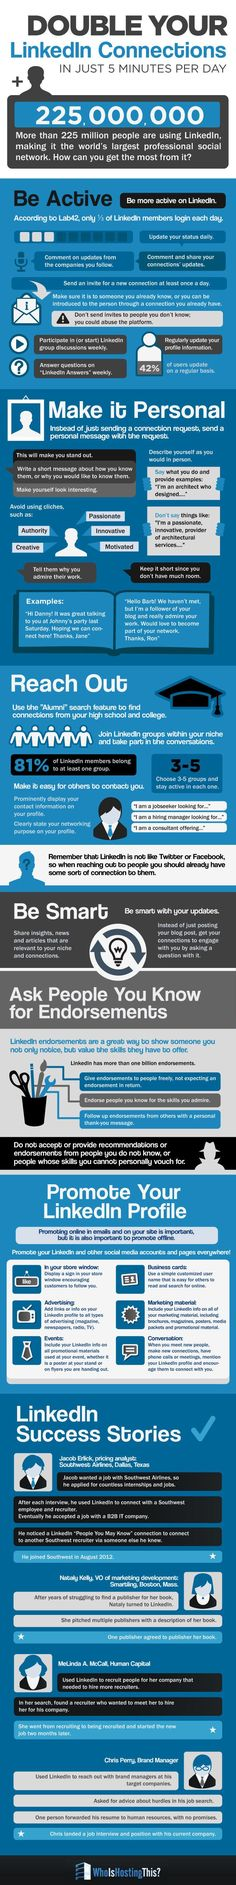 Grow Your Linkedin Connections - infographic